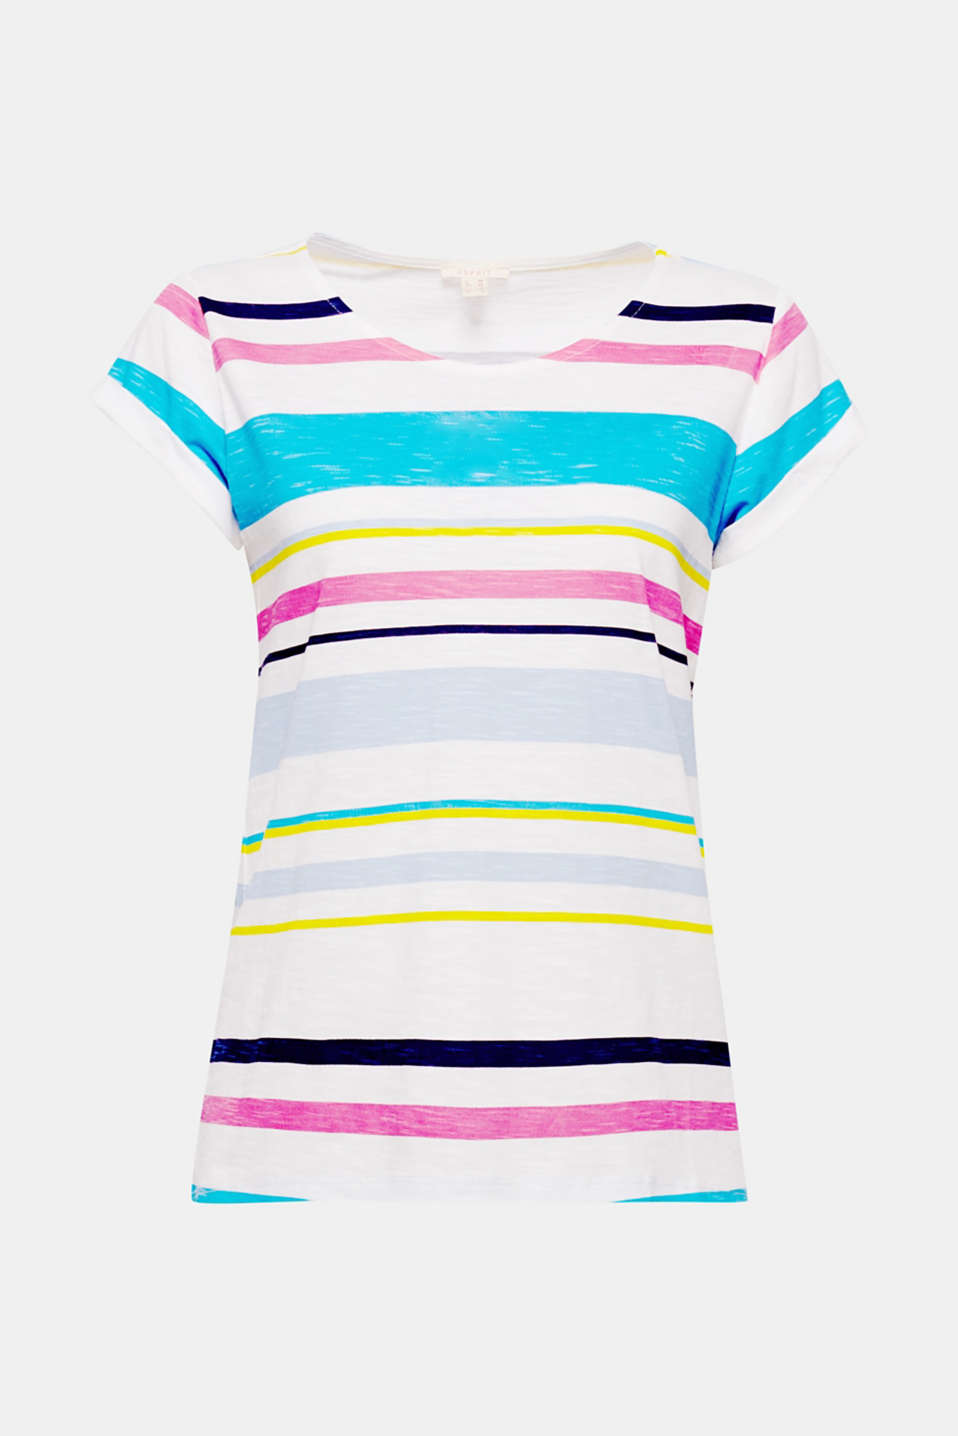 Colourful block stripes and the airy slub structure make this cotton top a perfect summer piece for every day!